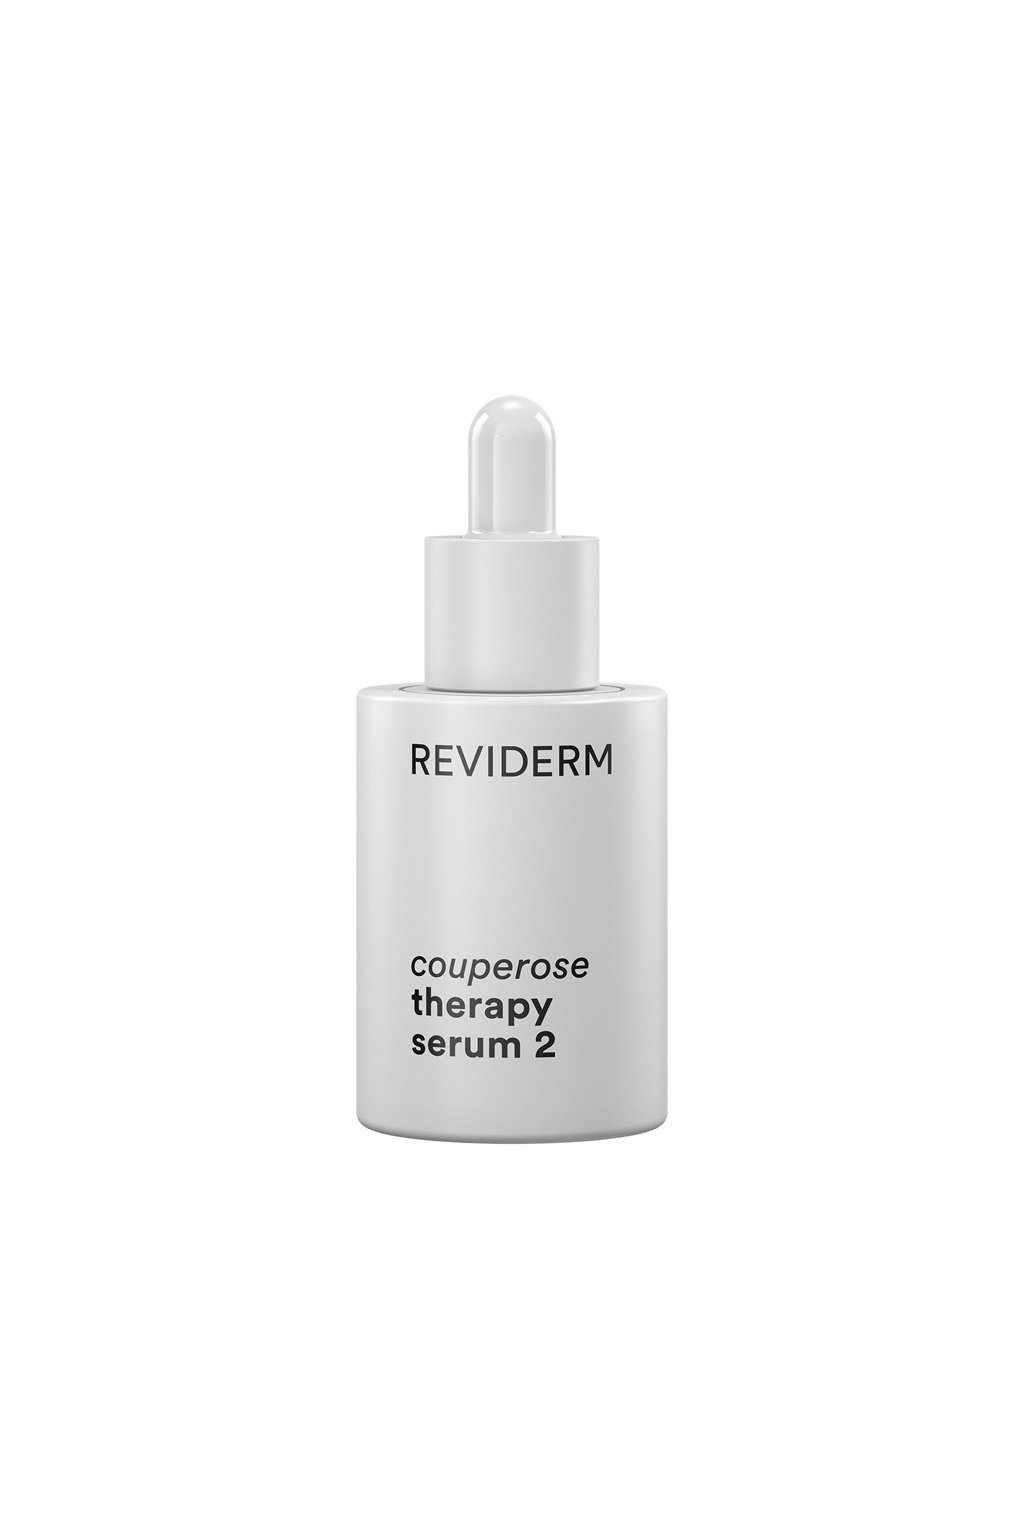 couperose therapy serum 2 | 30 ml